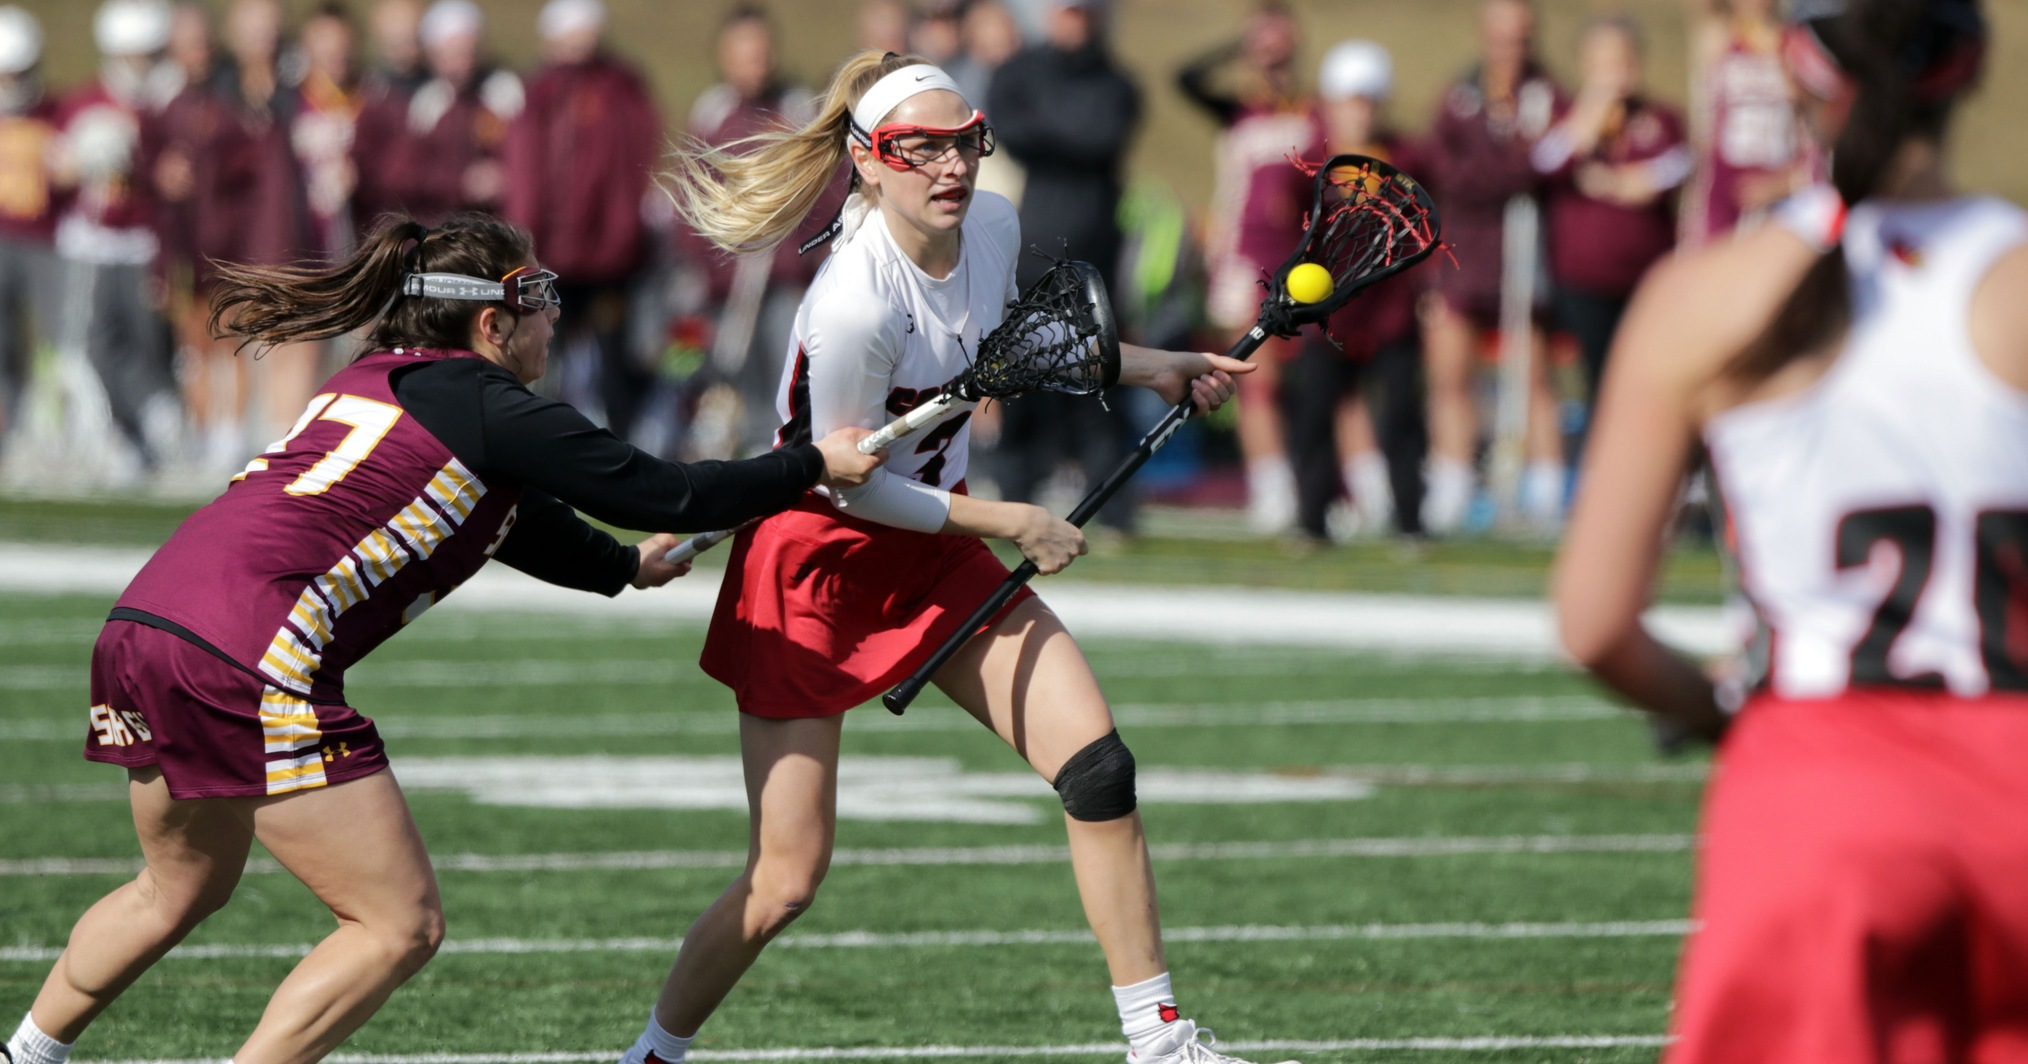 No. 15 Cardinals Fall to No. 4 Salisbury in Overtime, 13-12